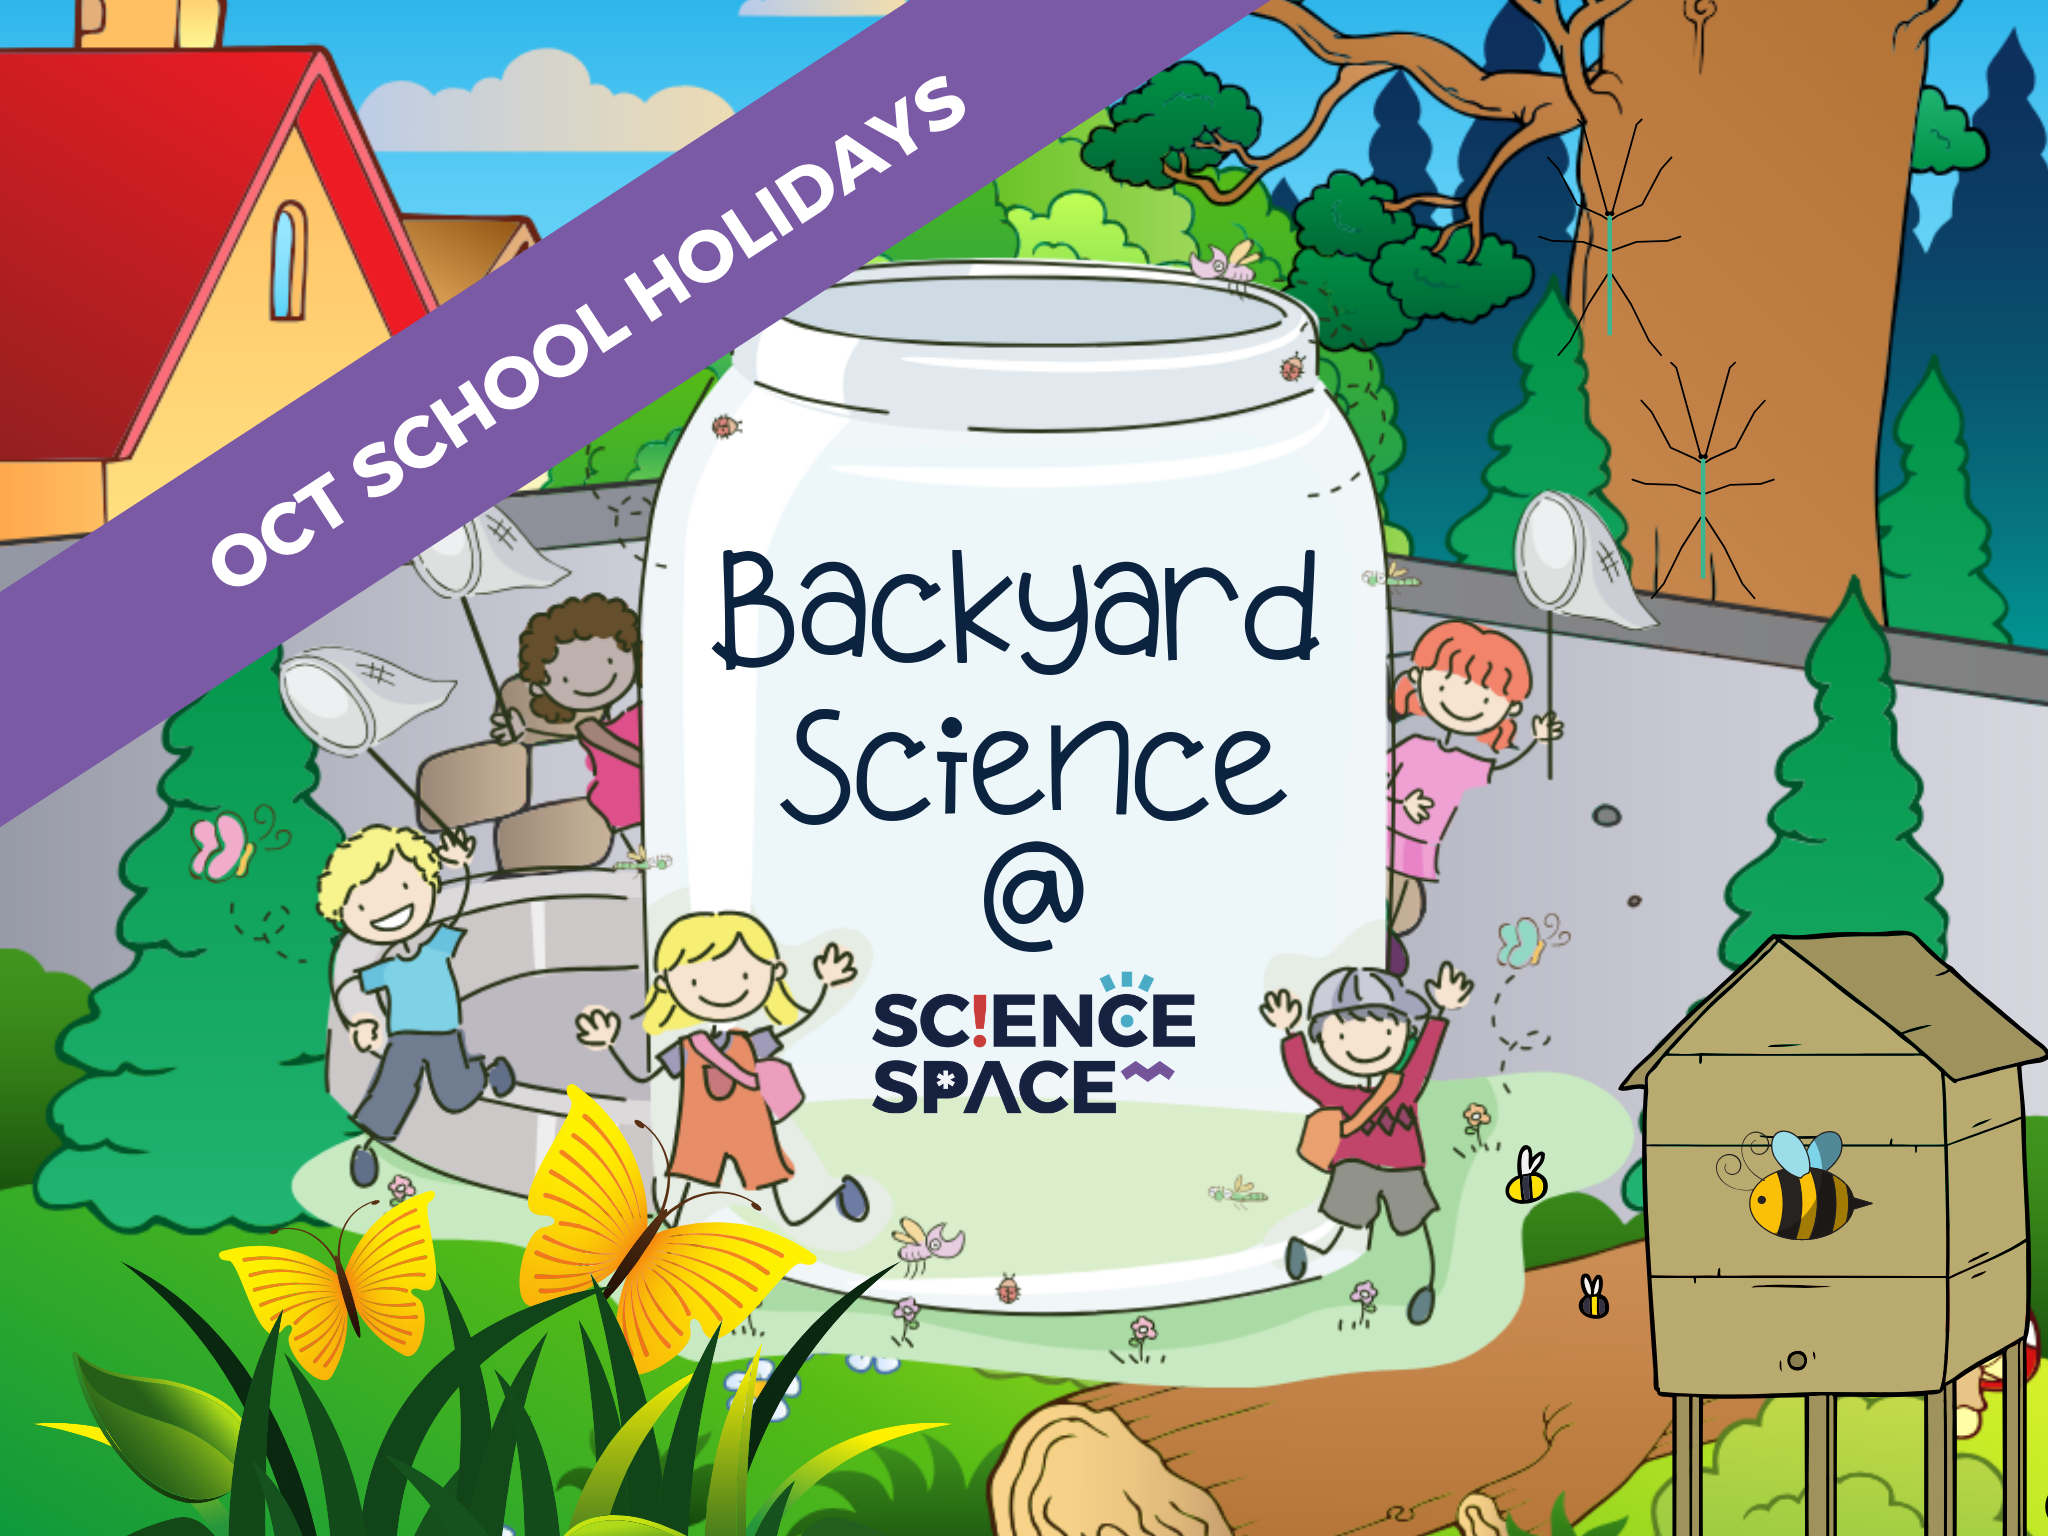 October School Holidays Science Space Wollongong